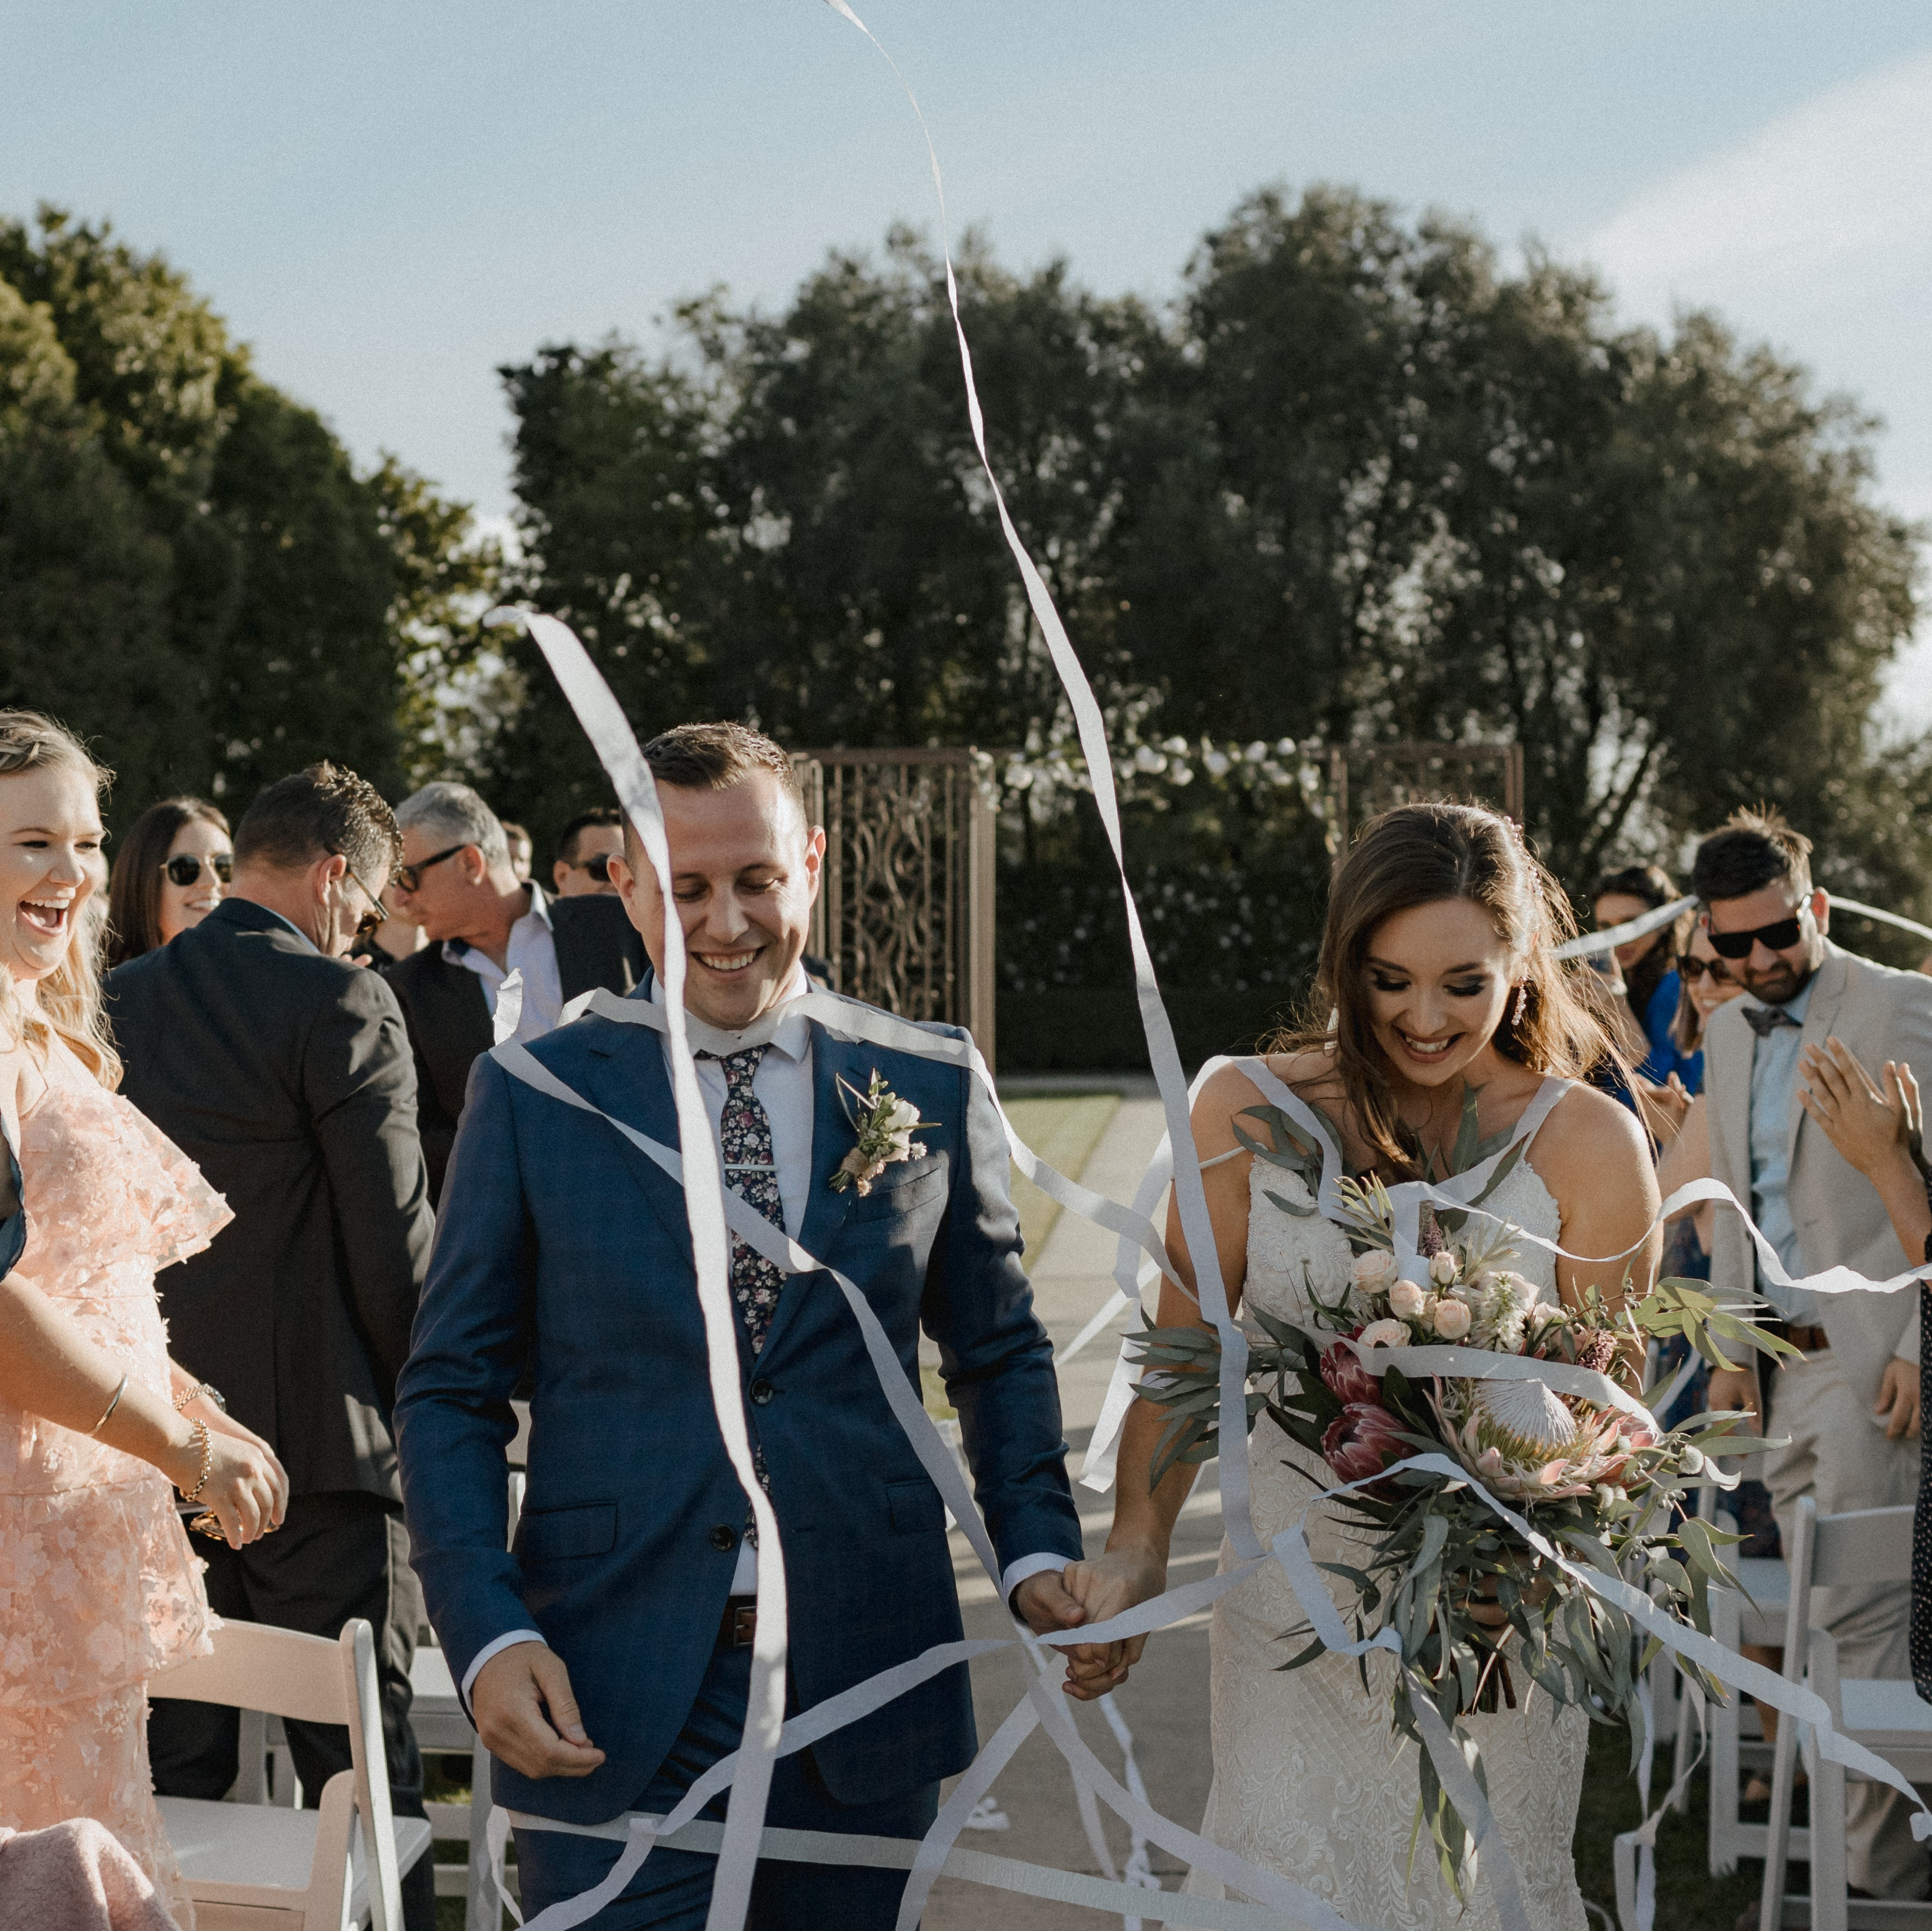 bride and groom walking down isle holding hands-confetti being thrown by guests-laughter